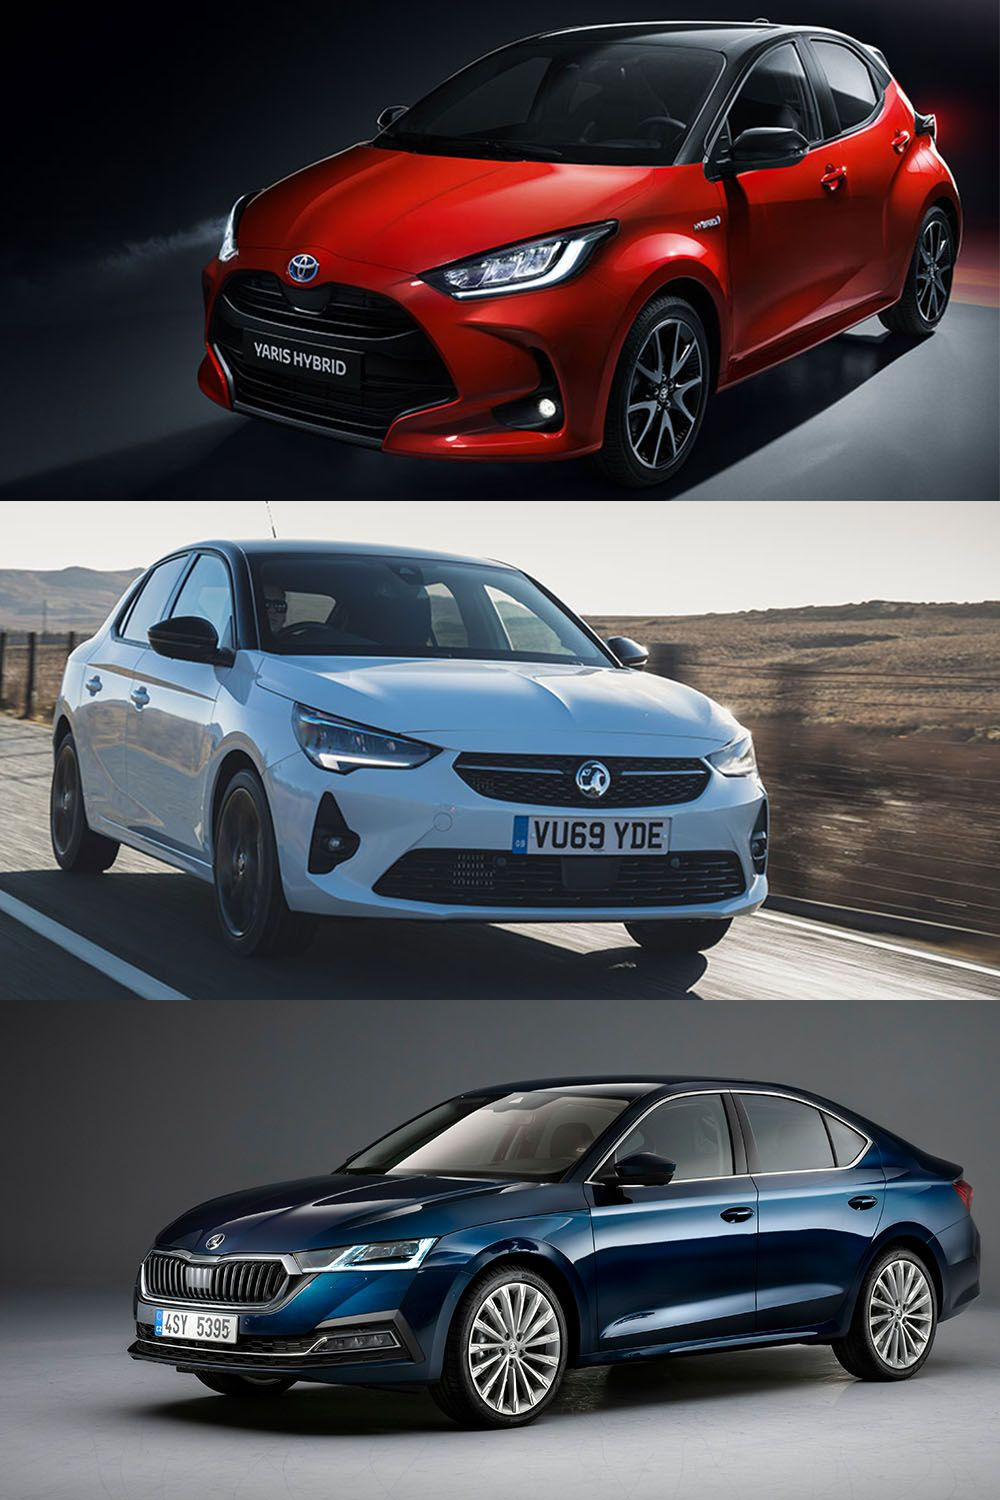 32+ Luxury car of the year 2020 Wallpaper